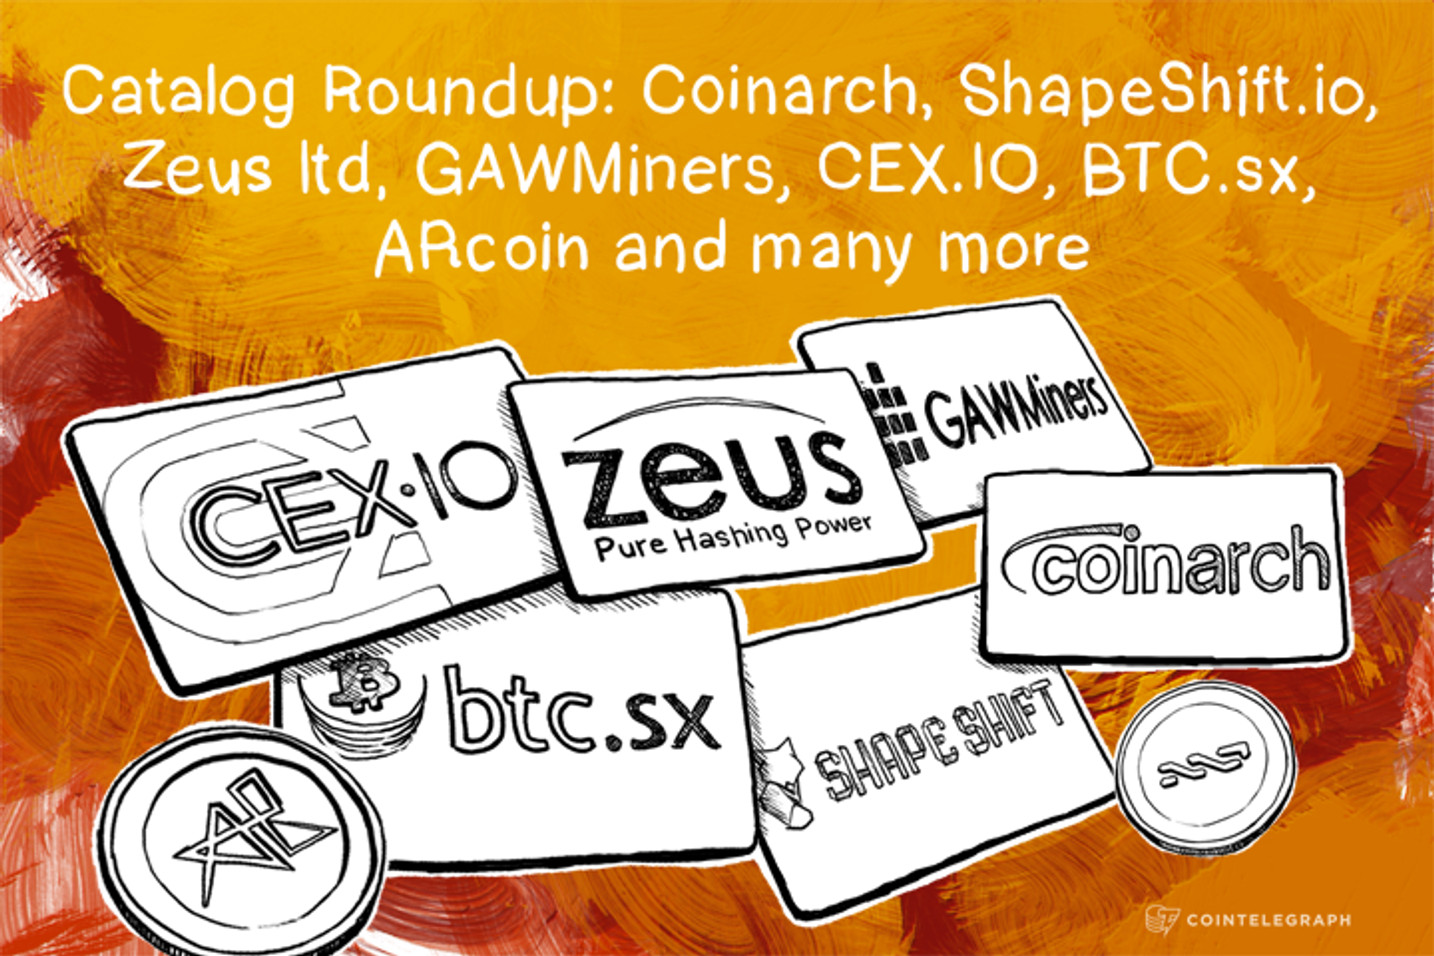 Catalog Roundup: Coinarch, ShapeShift.io, Zeus ltd, GAWMiners, CEX.IO, BTC.sx, PB Mining, ARcoin and many more